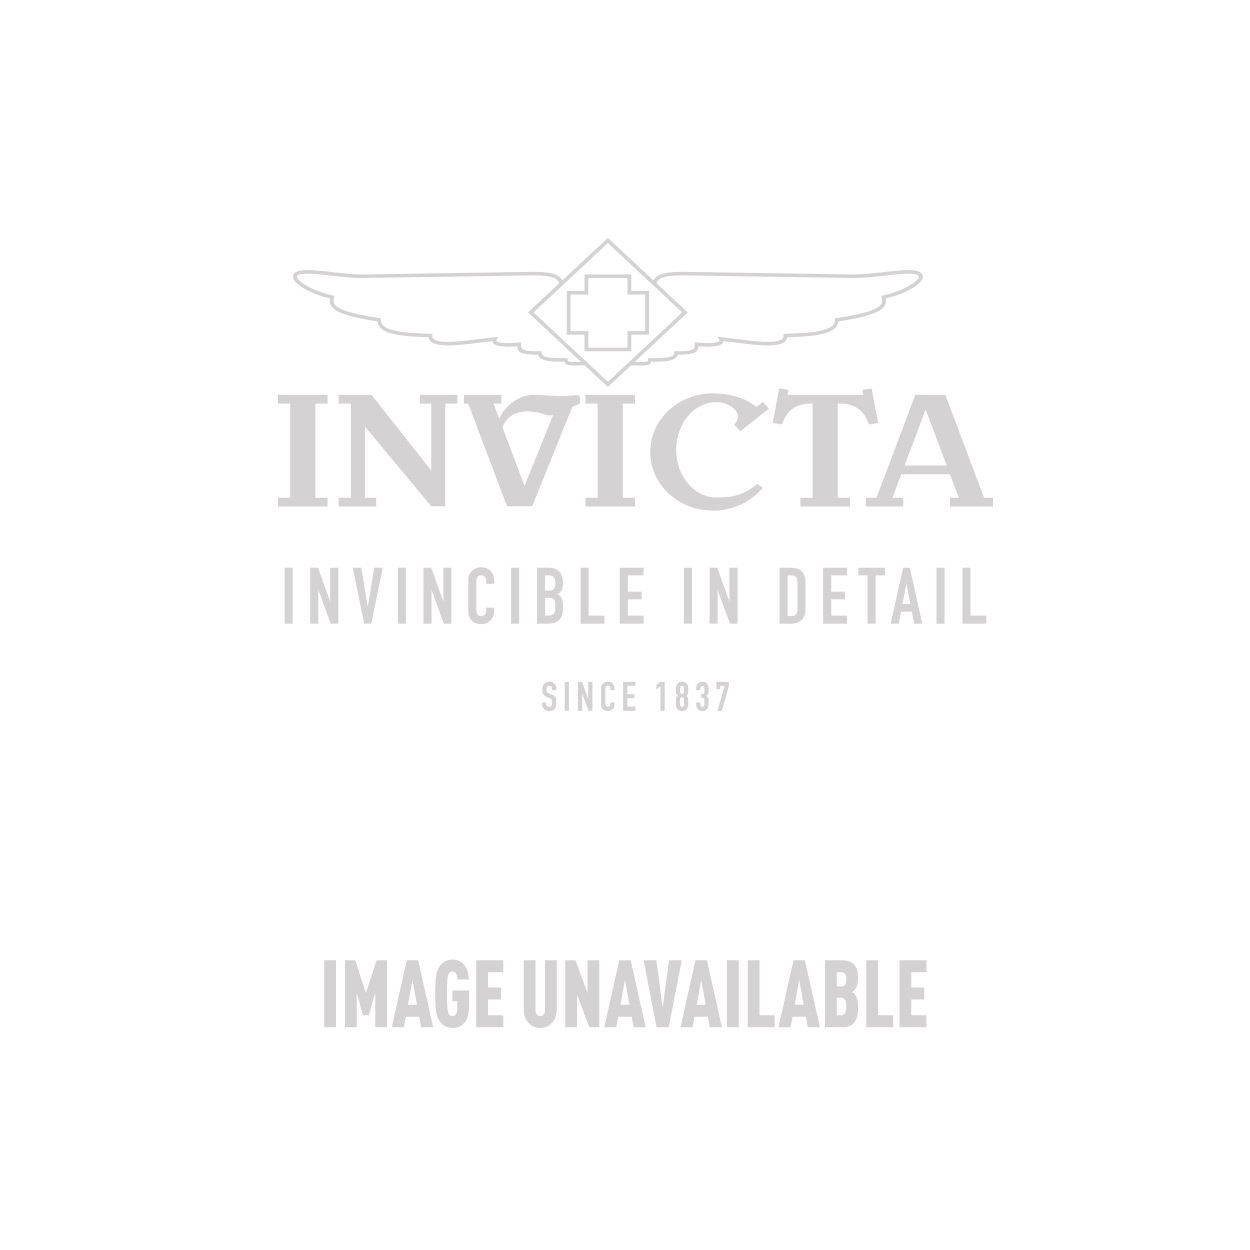 Invicta Pro Diver Swiss Movement Quartz Watch - Stainless Steel case with Steel, Black tone Stainless Steel, Polyurethane band - Model 6977